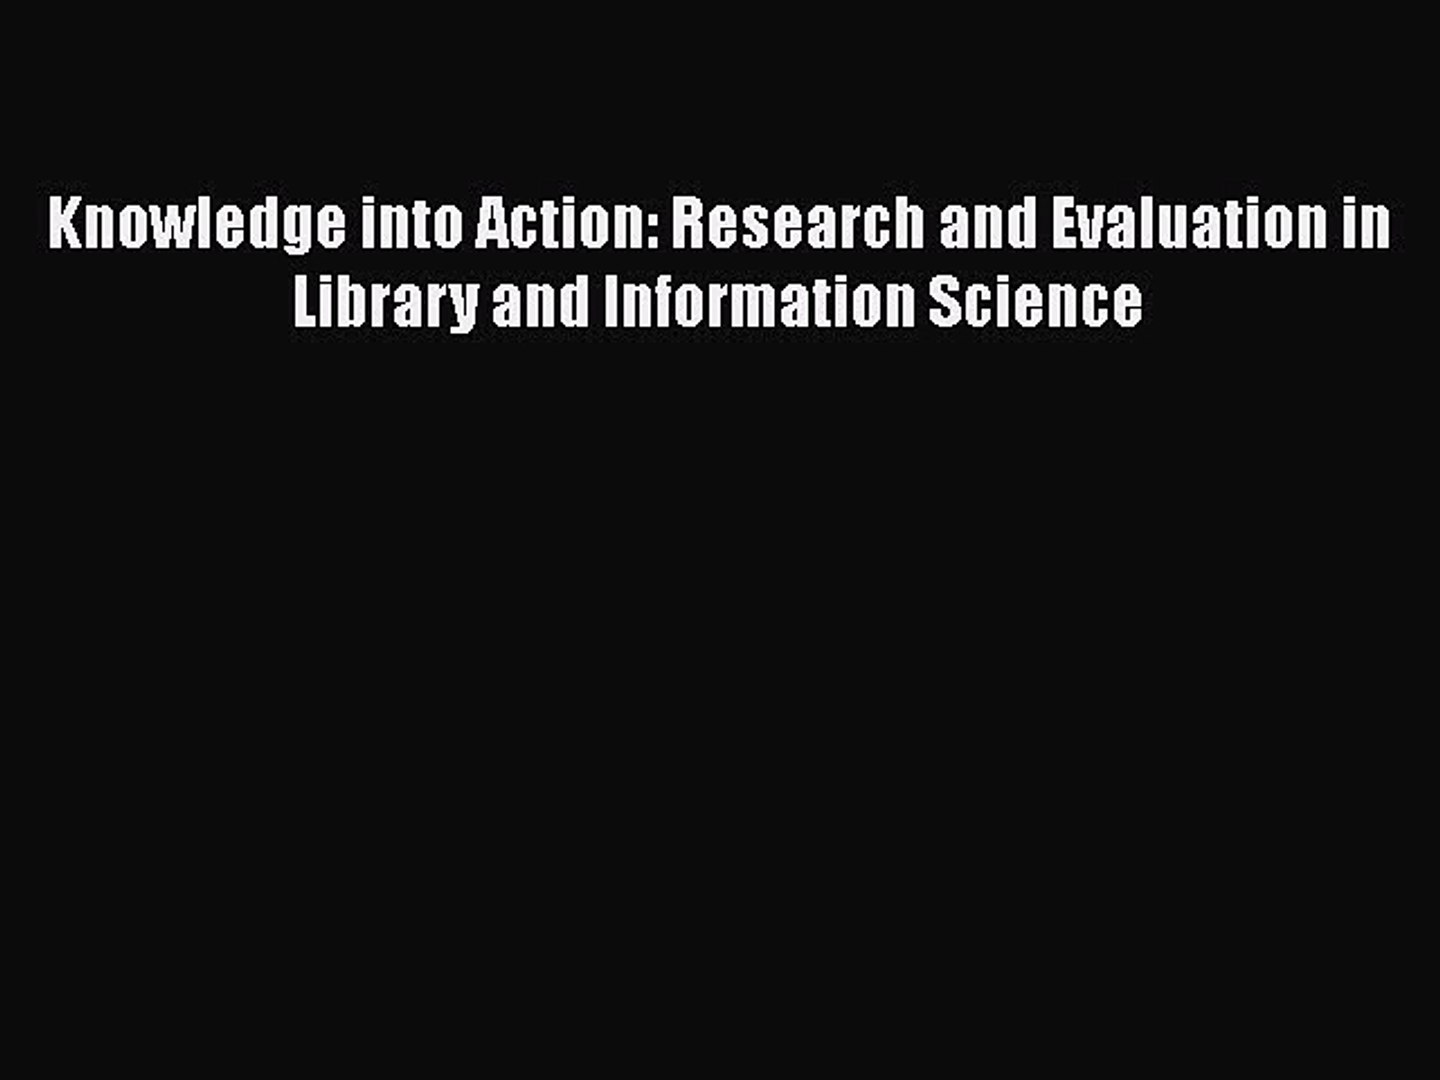 Research and Evaluation in Library and Information Science Knowledge into Action